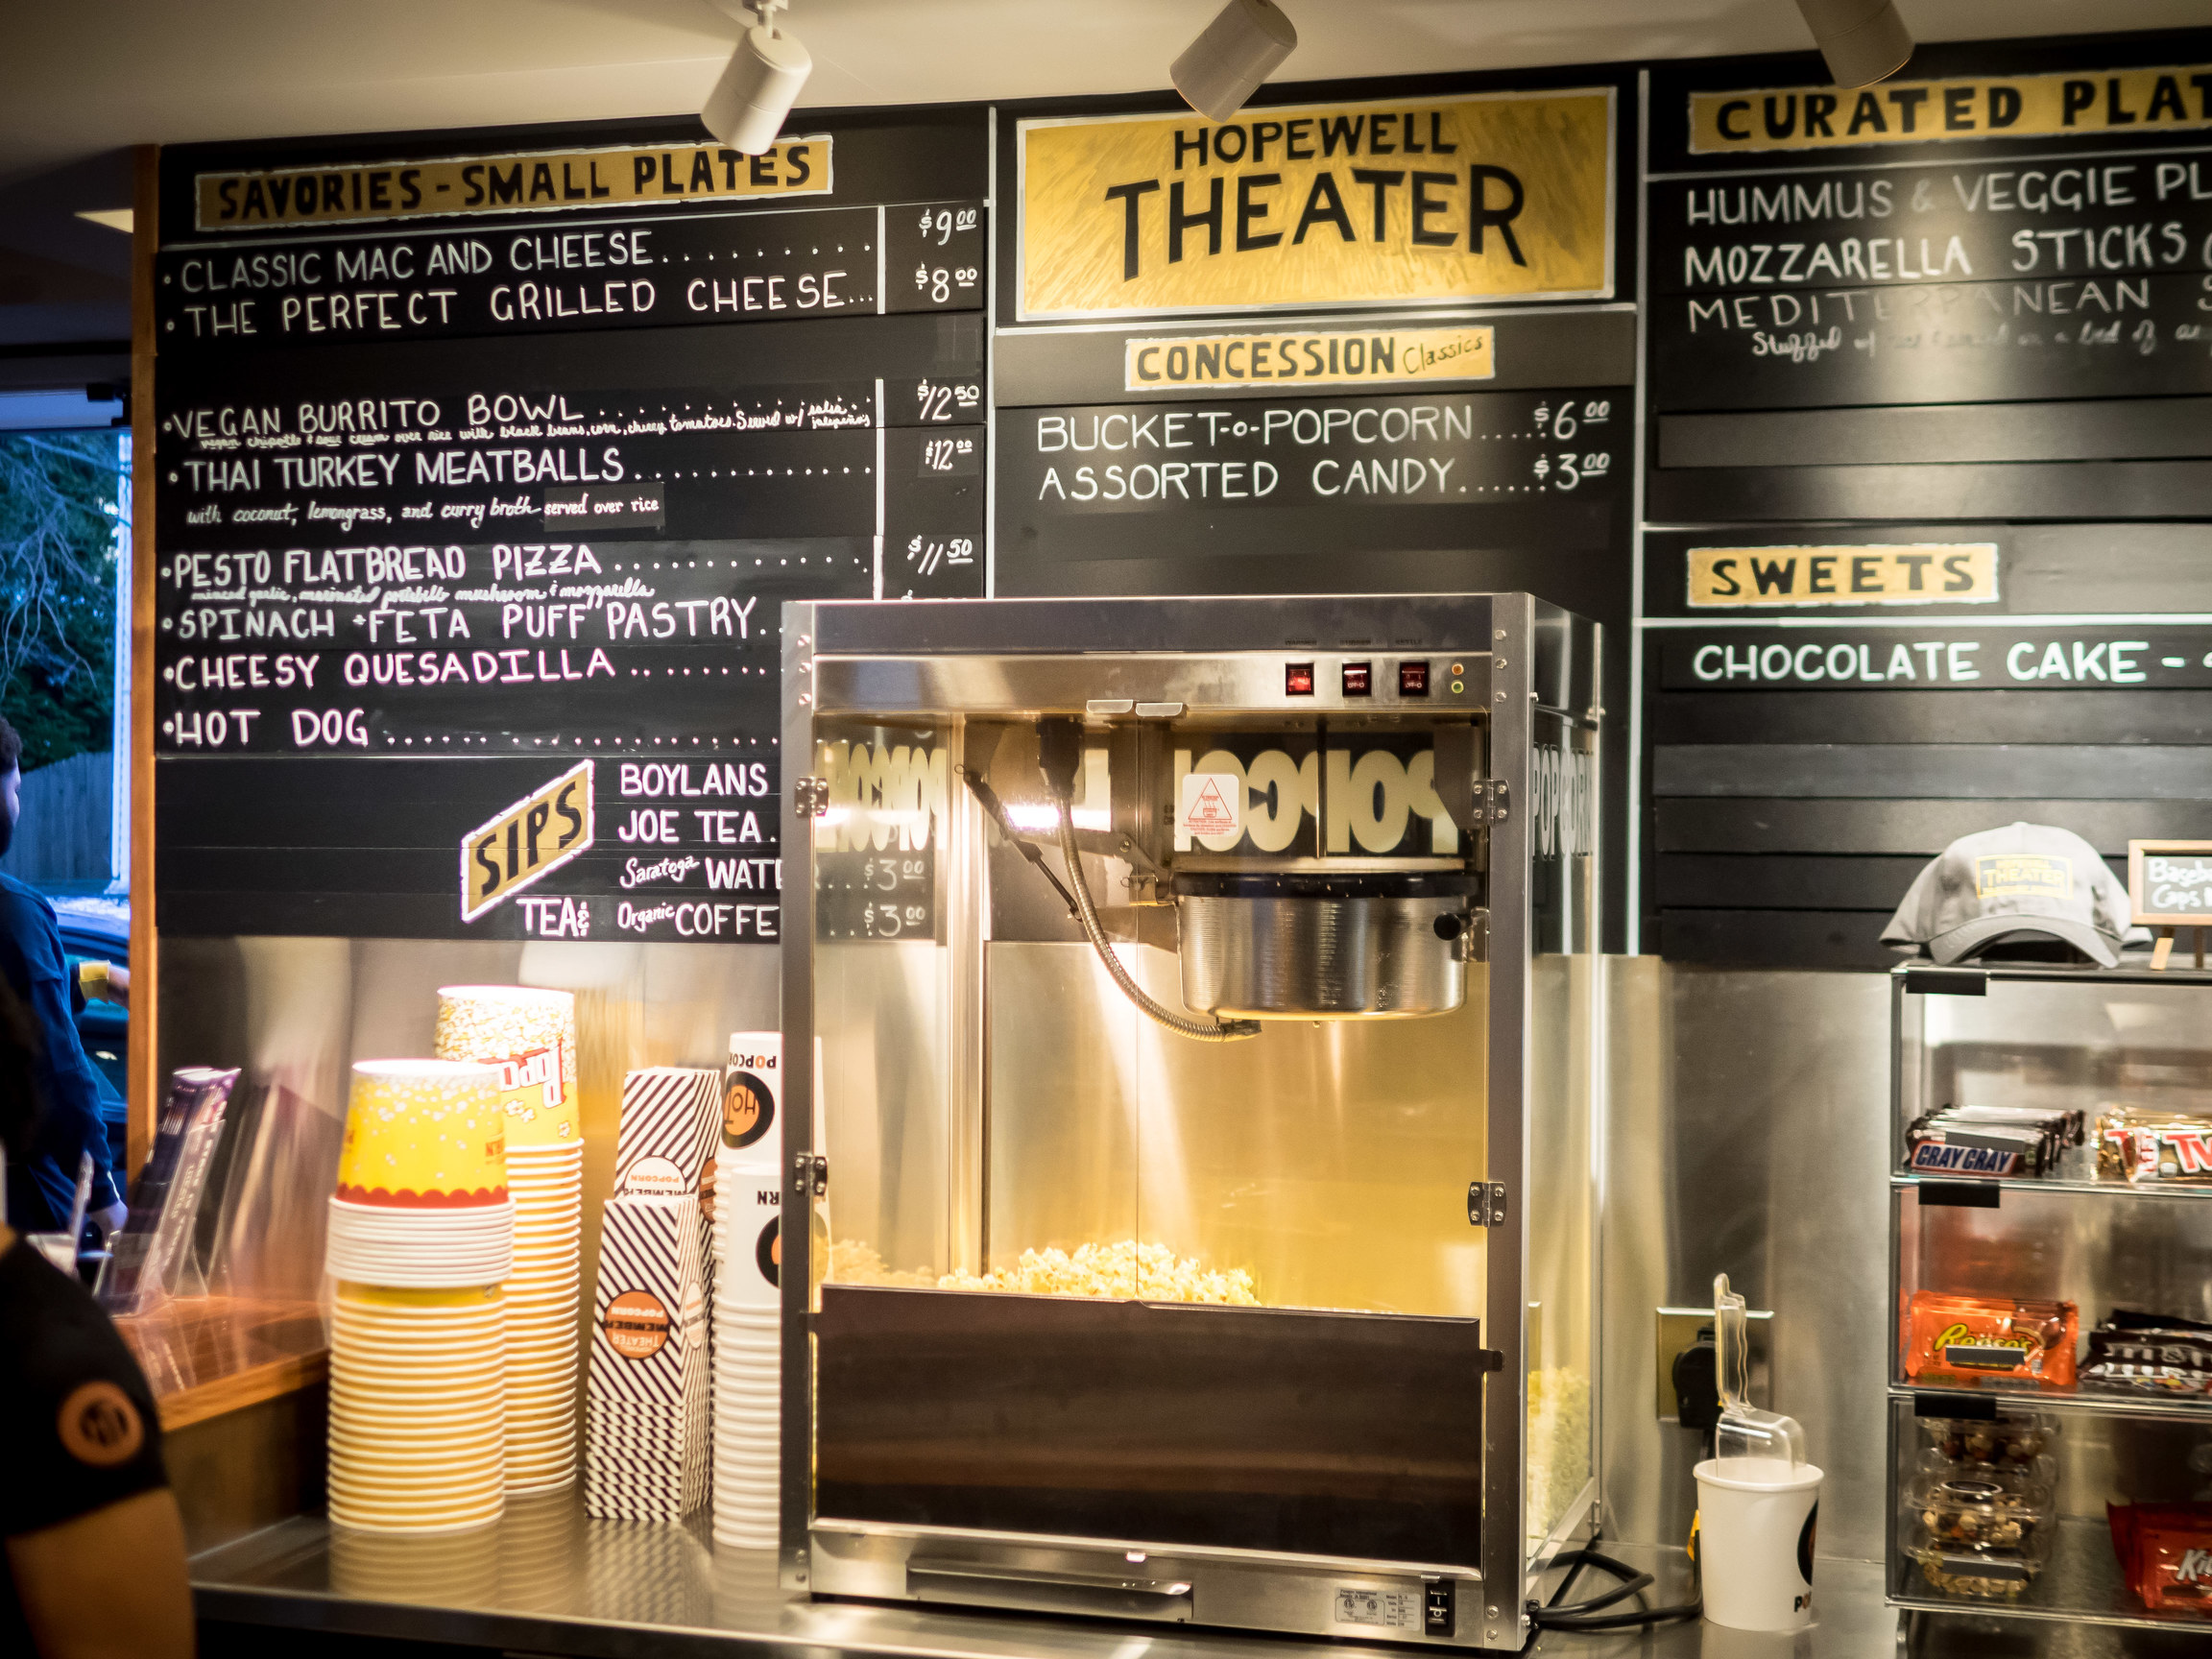 Our dine-in menu changes nightly but the popcorn is always on.